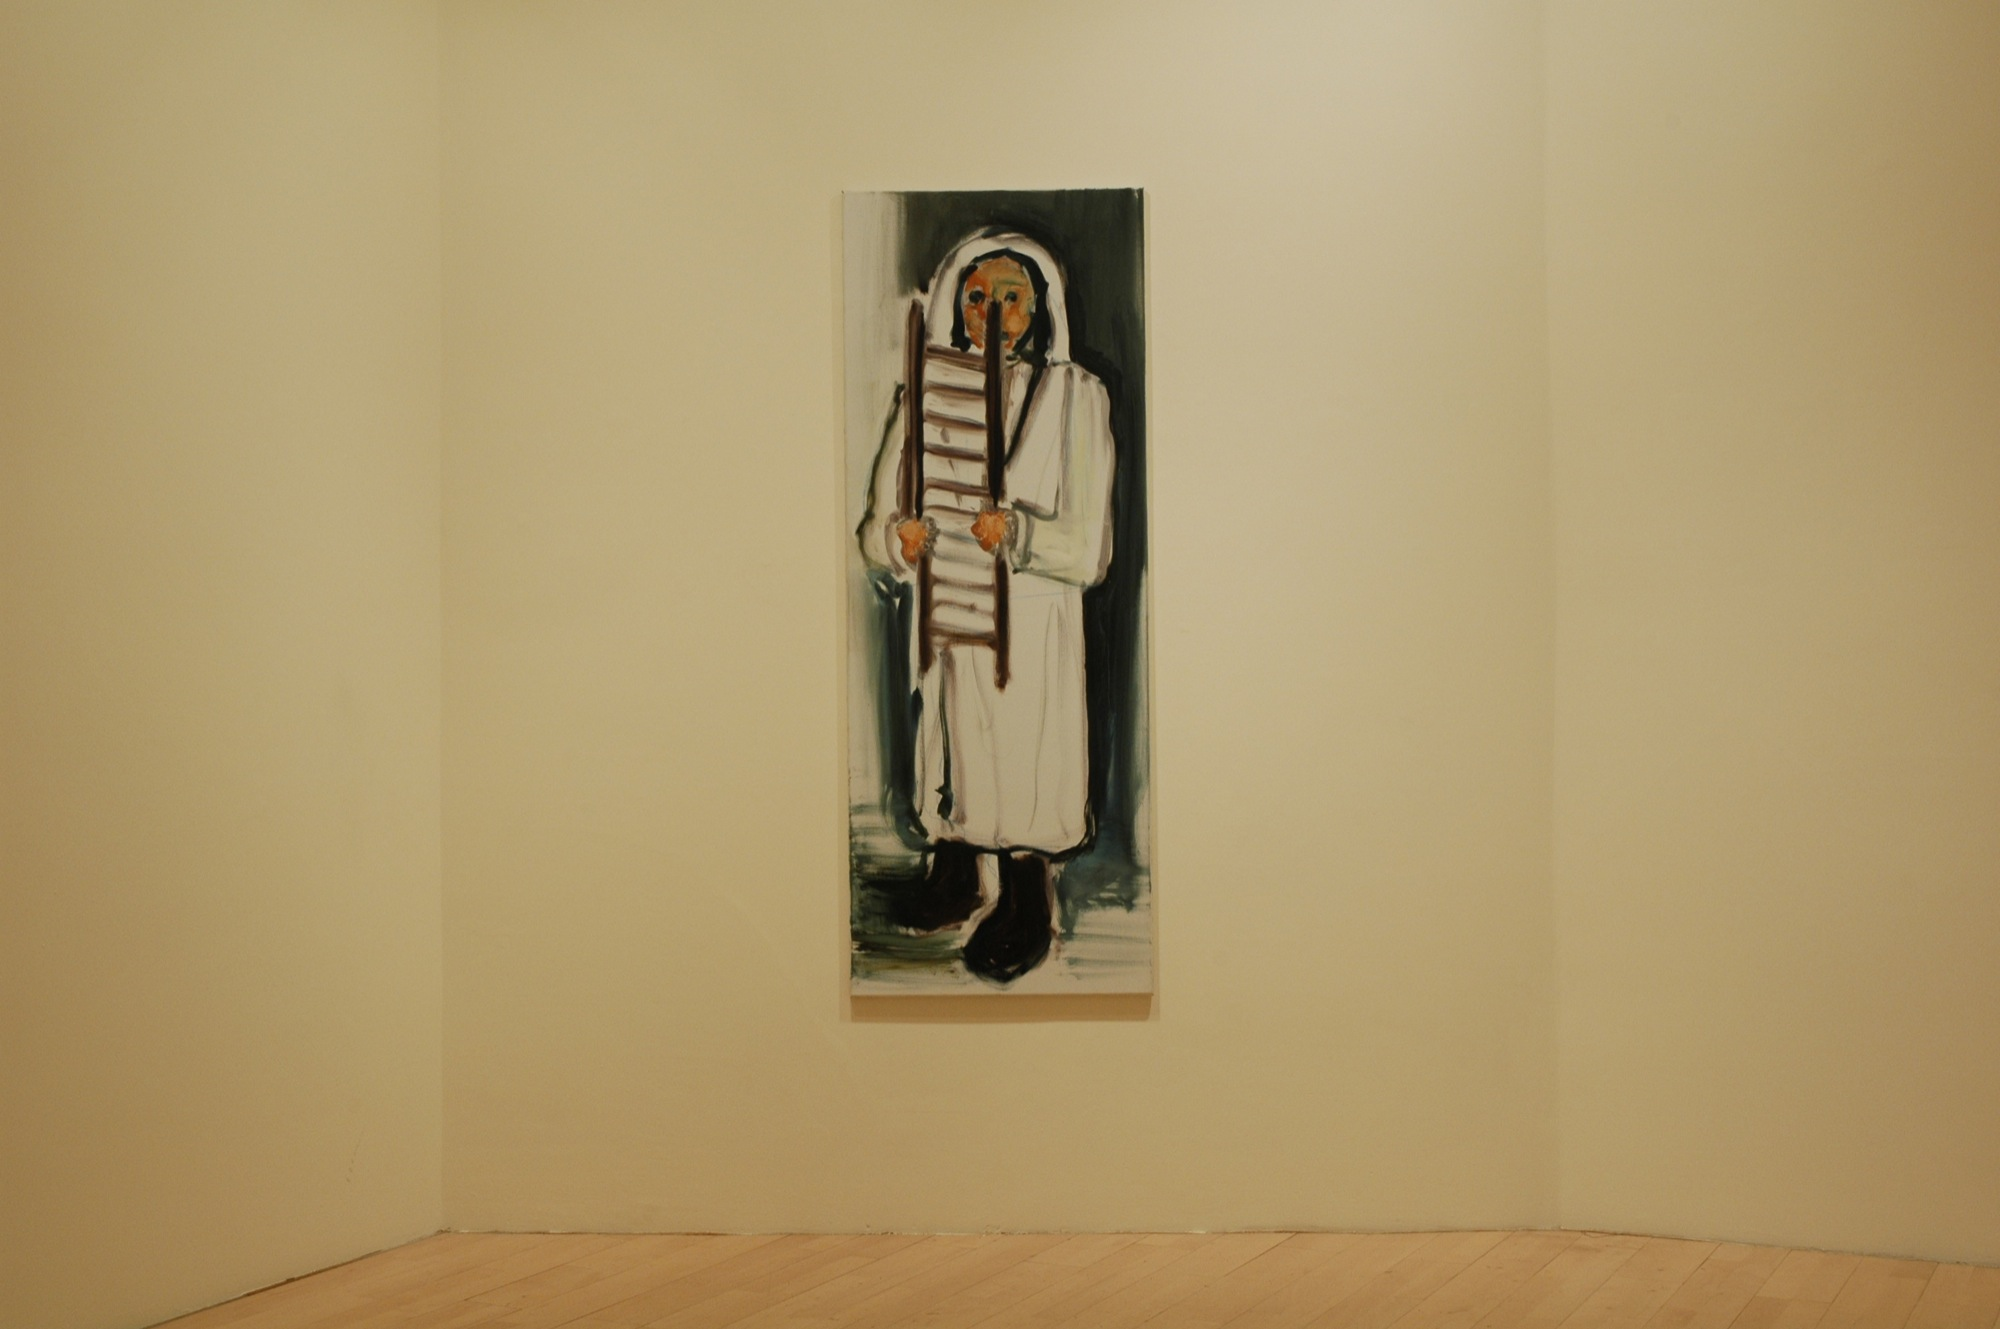 Frith Street Gallery, The Second Coming, 2004